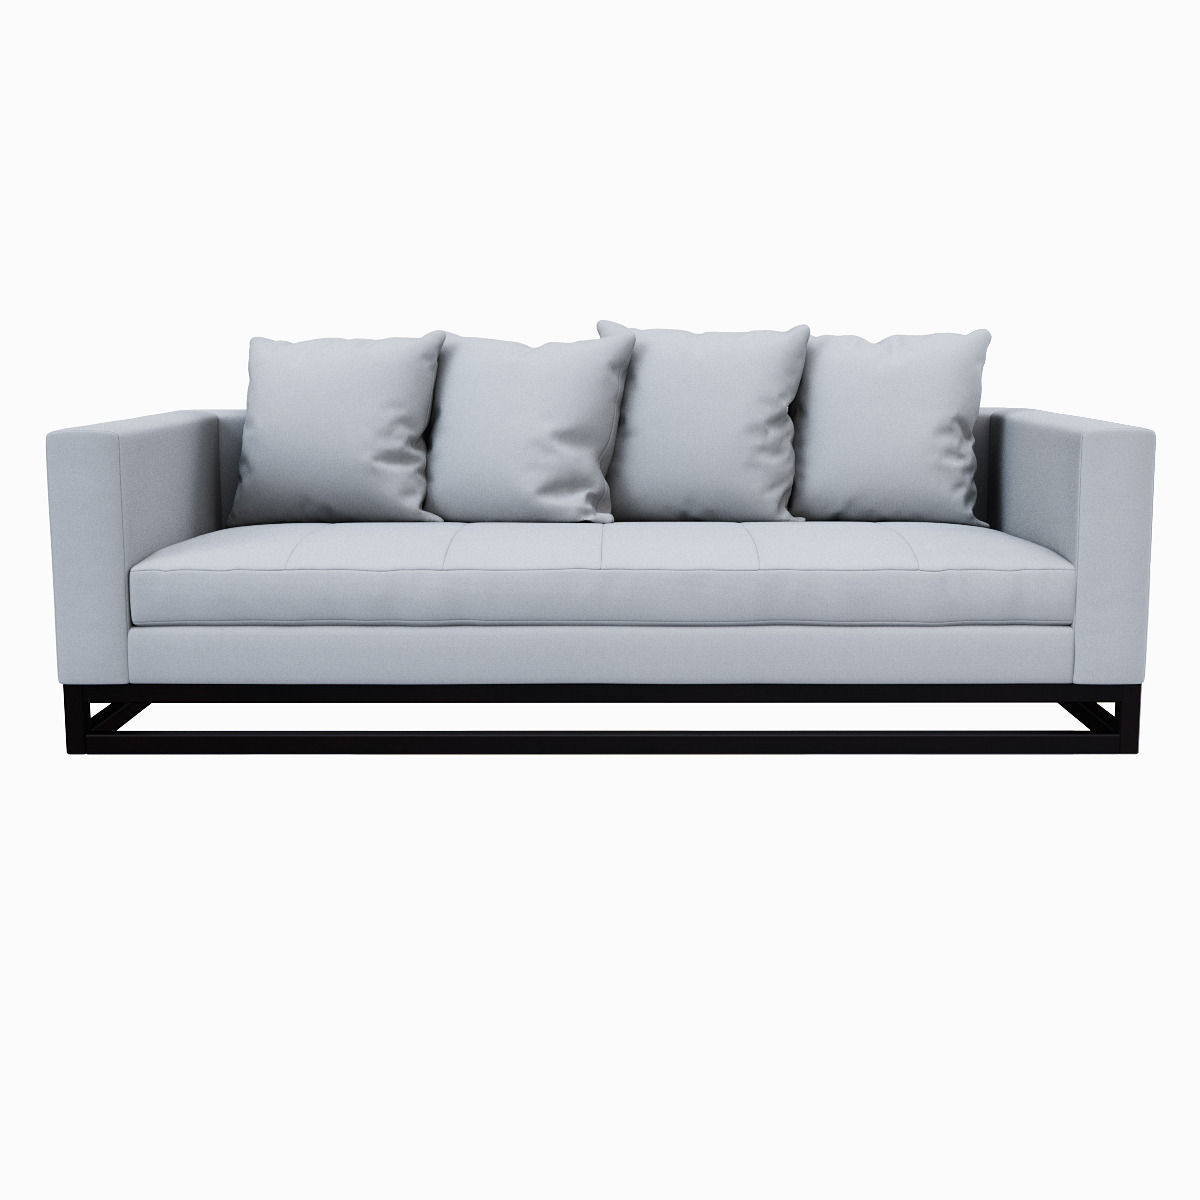 3D West Elm TossBack DownFilled Sofa CGTrader